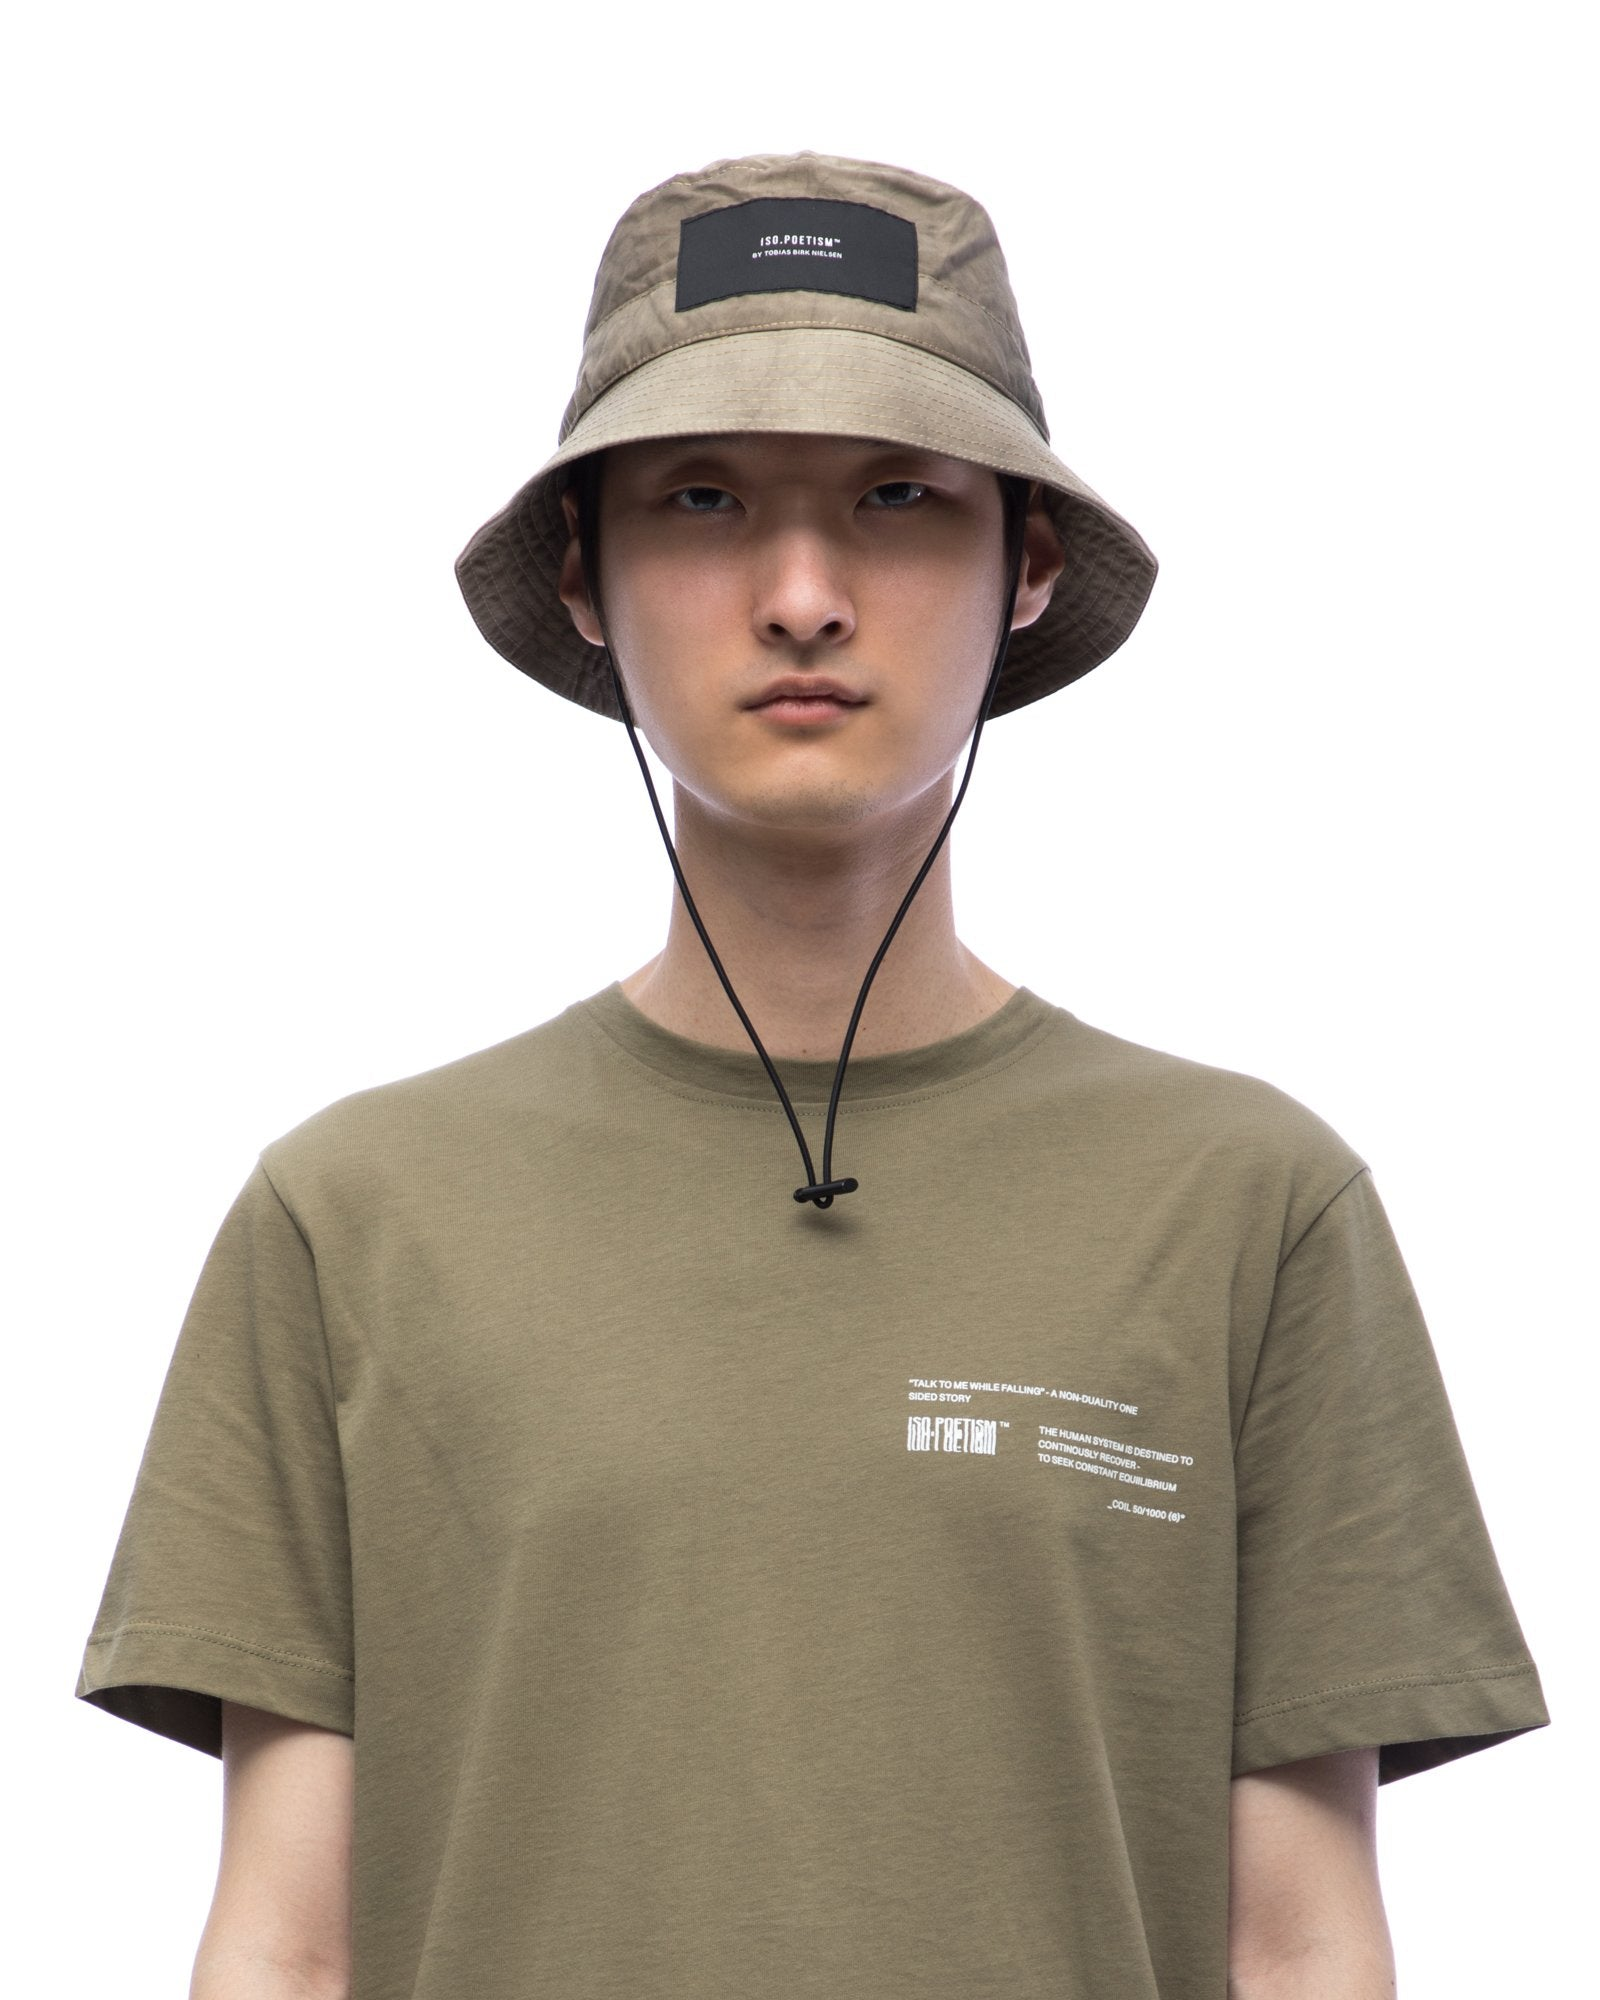 Bucket hat with elastic string - sand cracked